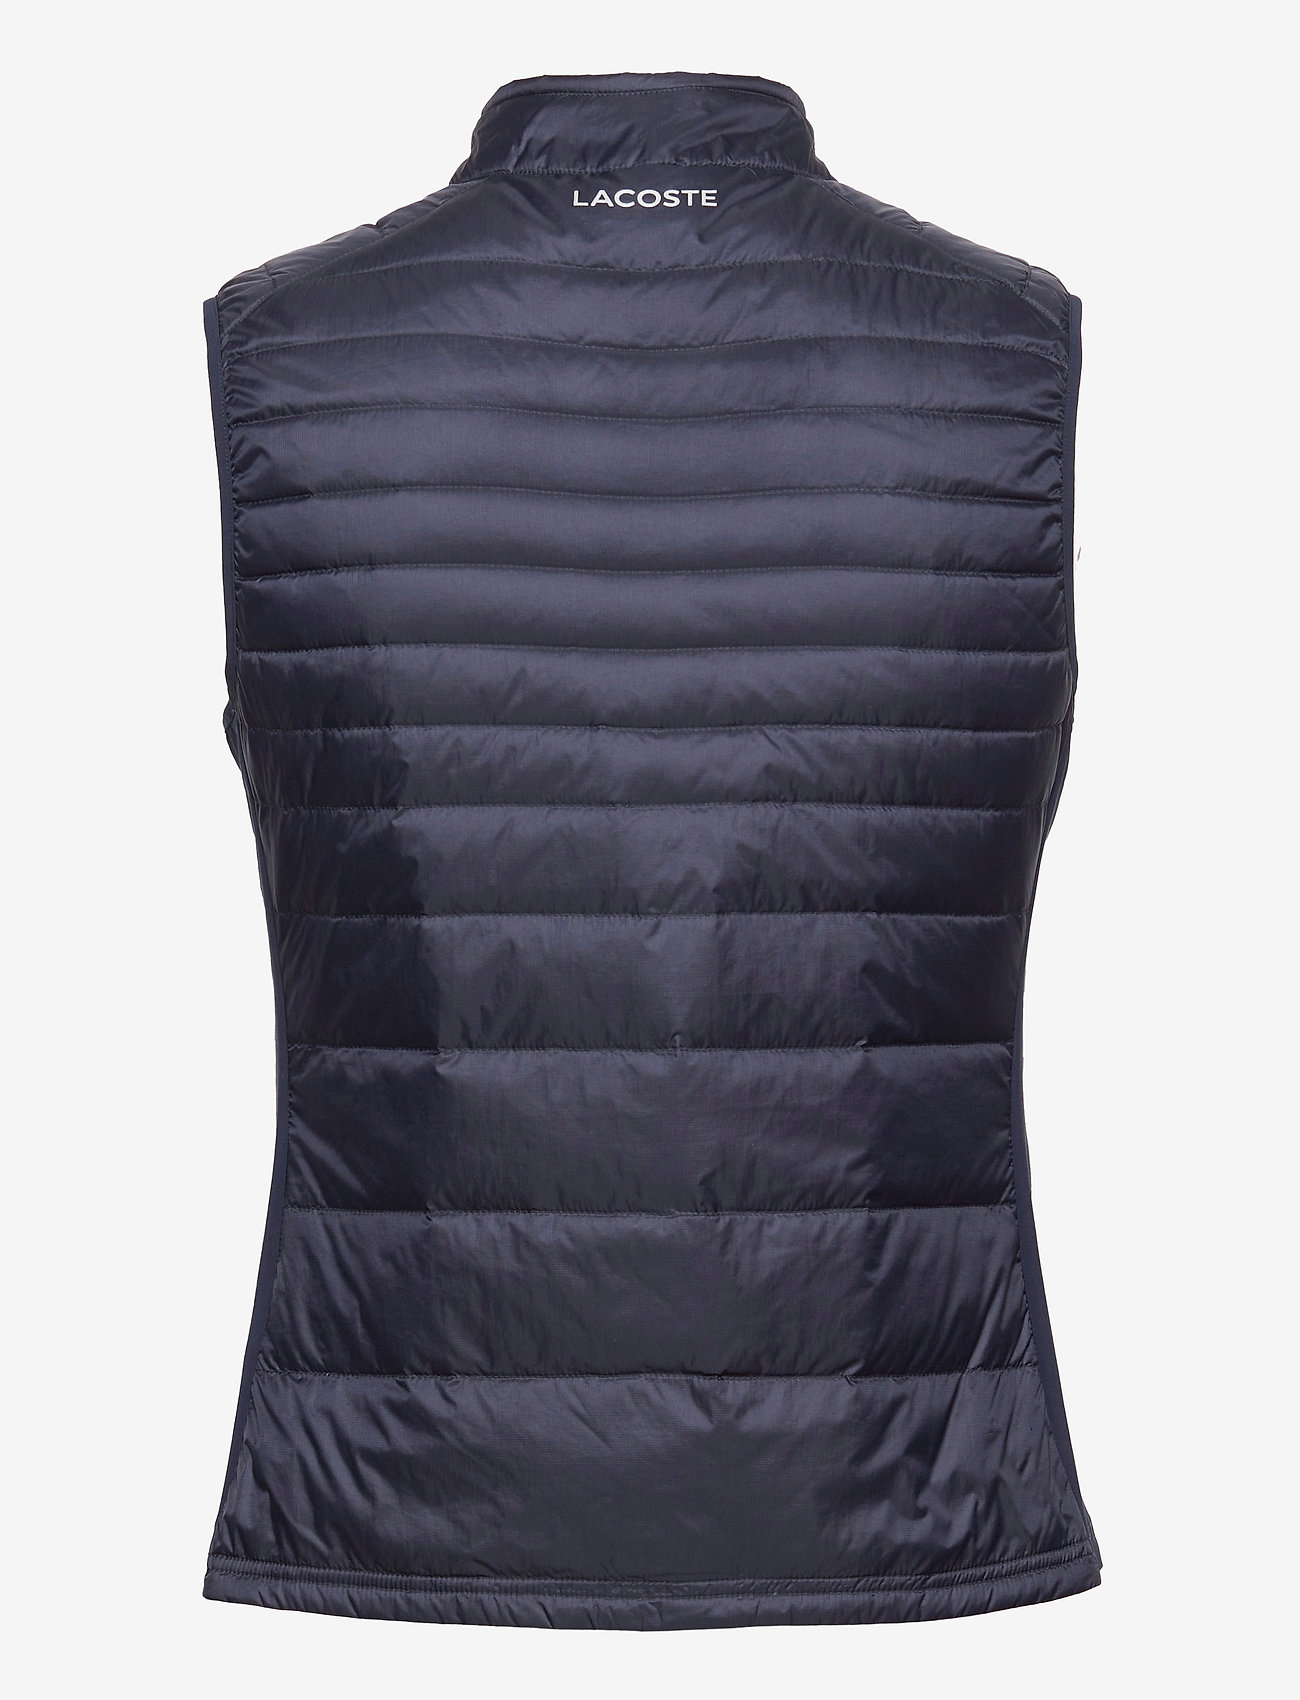 Lacoste - Women s jacket - puffer vests - navy blue/navy blue - 1